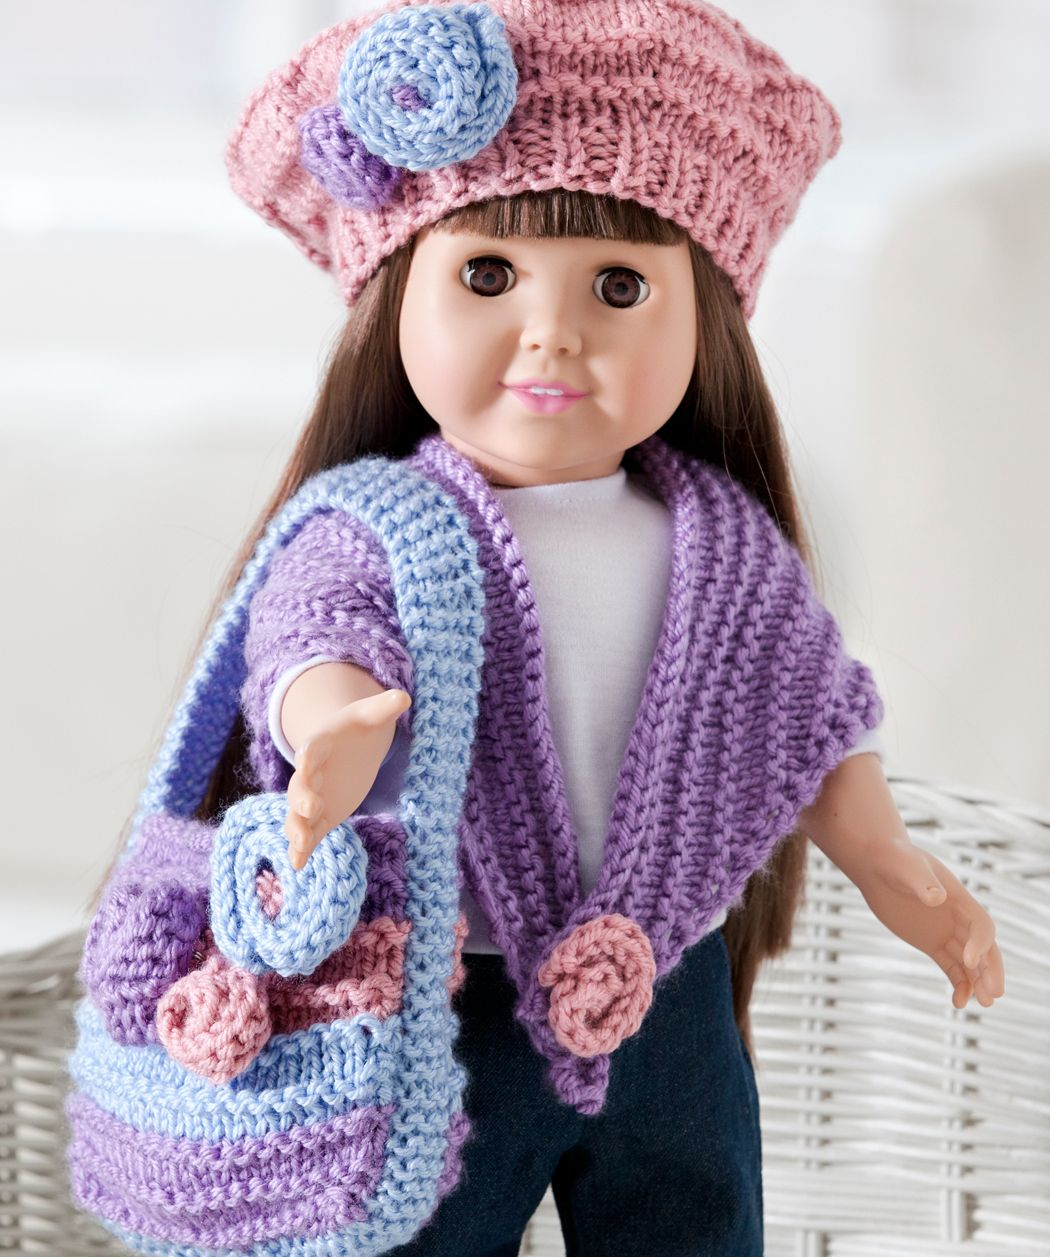 Complete your dolls look with the perfect knit accessories for their american girl dolls free knitting doll clothing and accessories patterns do it yourself pins bankloansurffo Choice Image